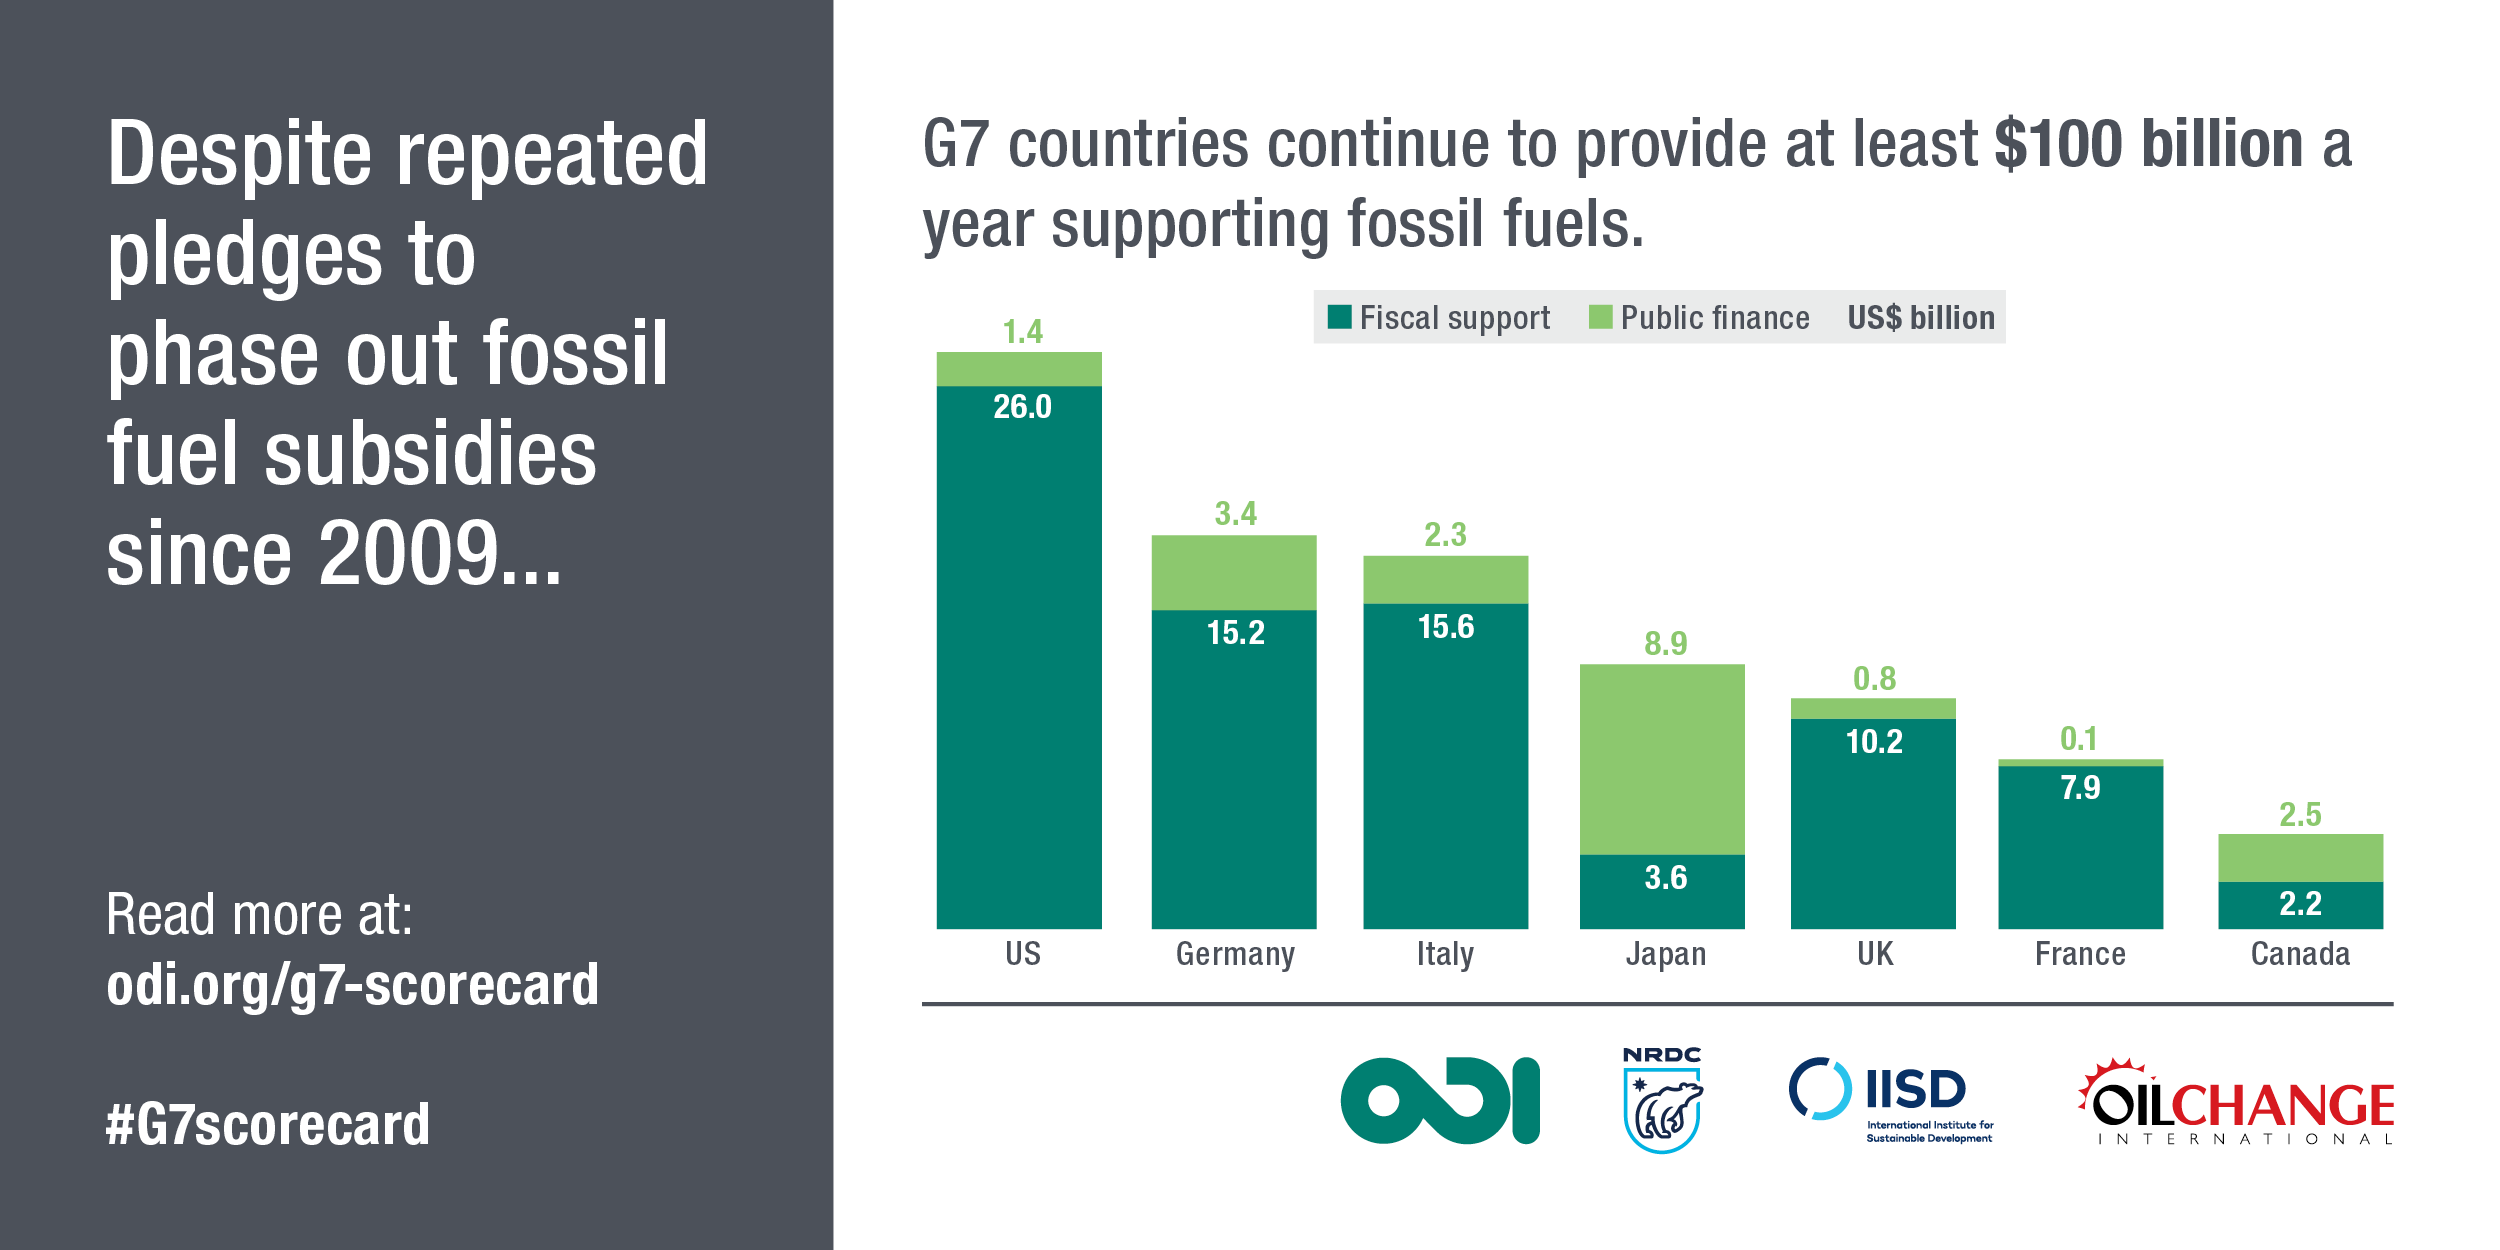 Despite repeated pledges to phase out fossil fuel subsidies since 2009, G7 countries continue to provide at least $100 billion a year supporting fossil fuels. Image: ODI